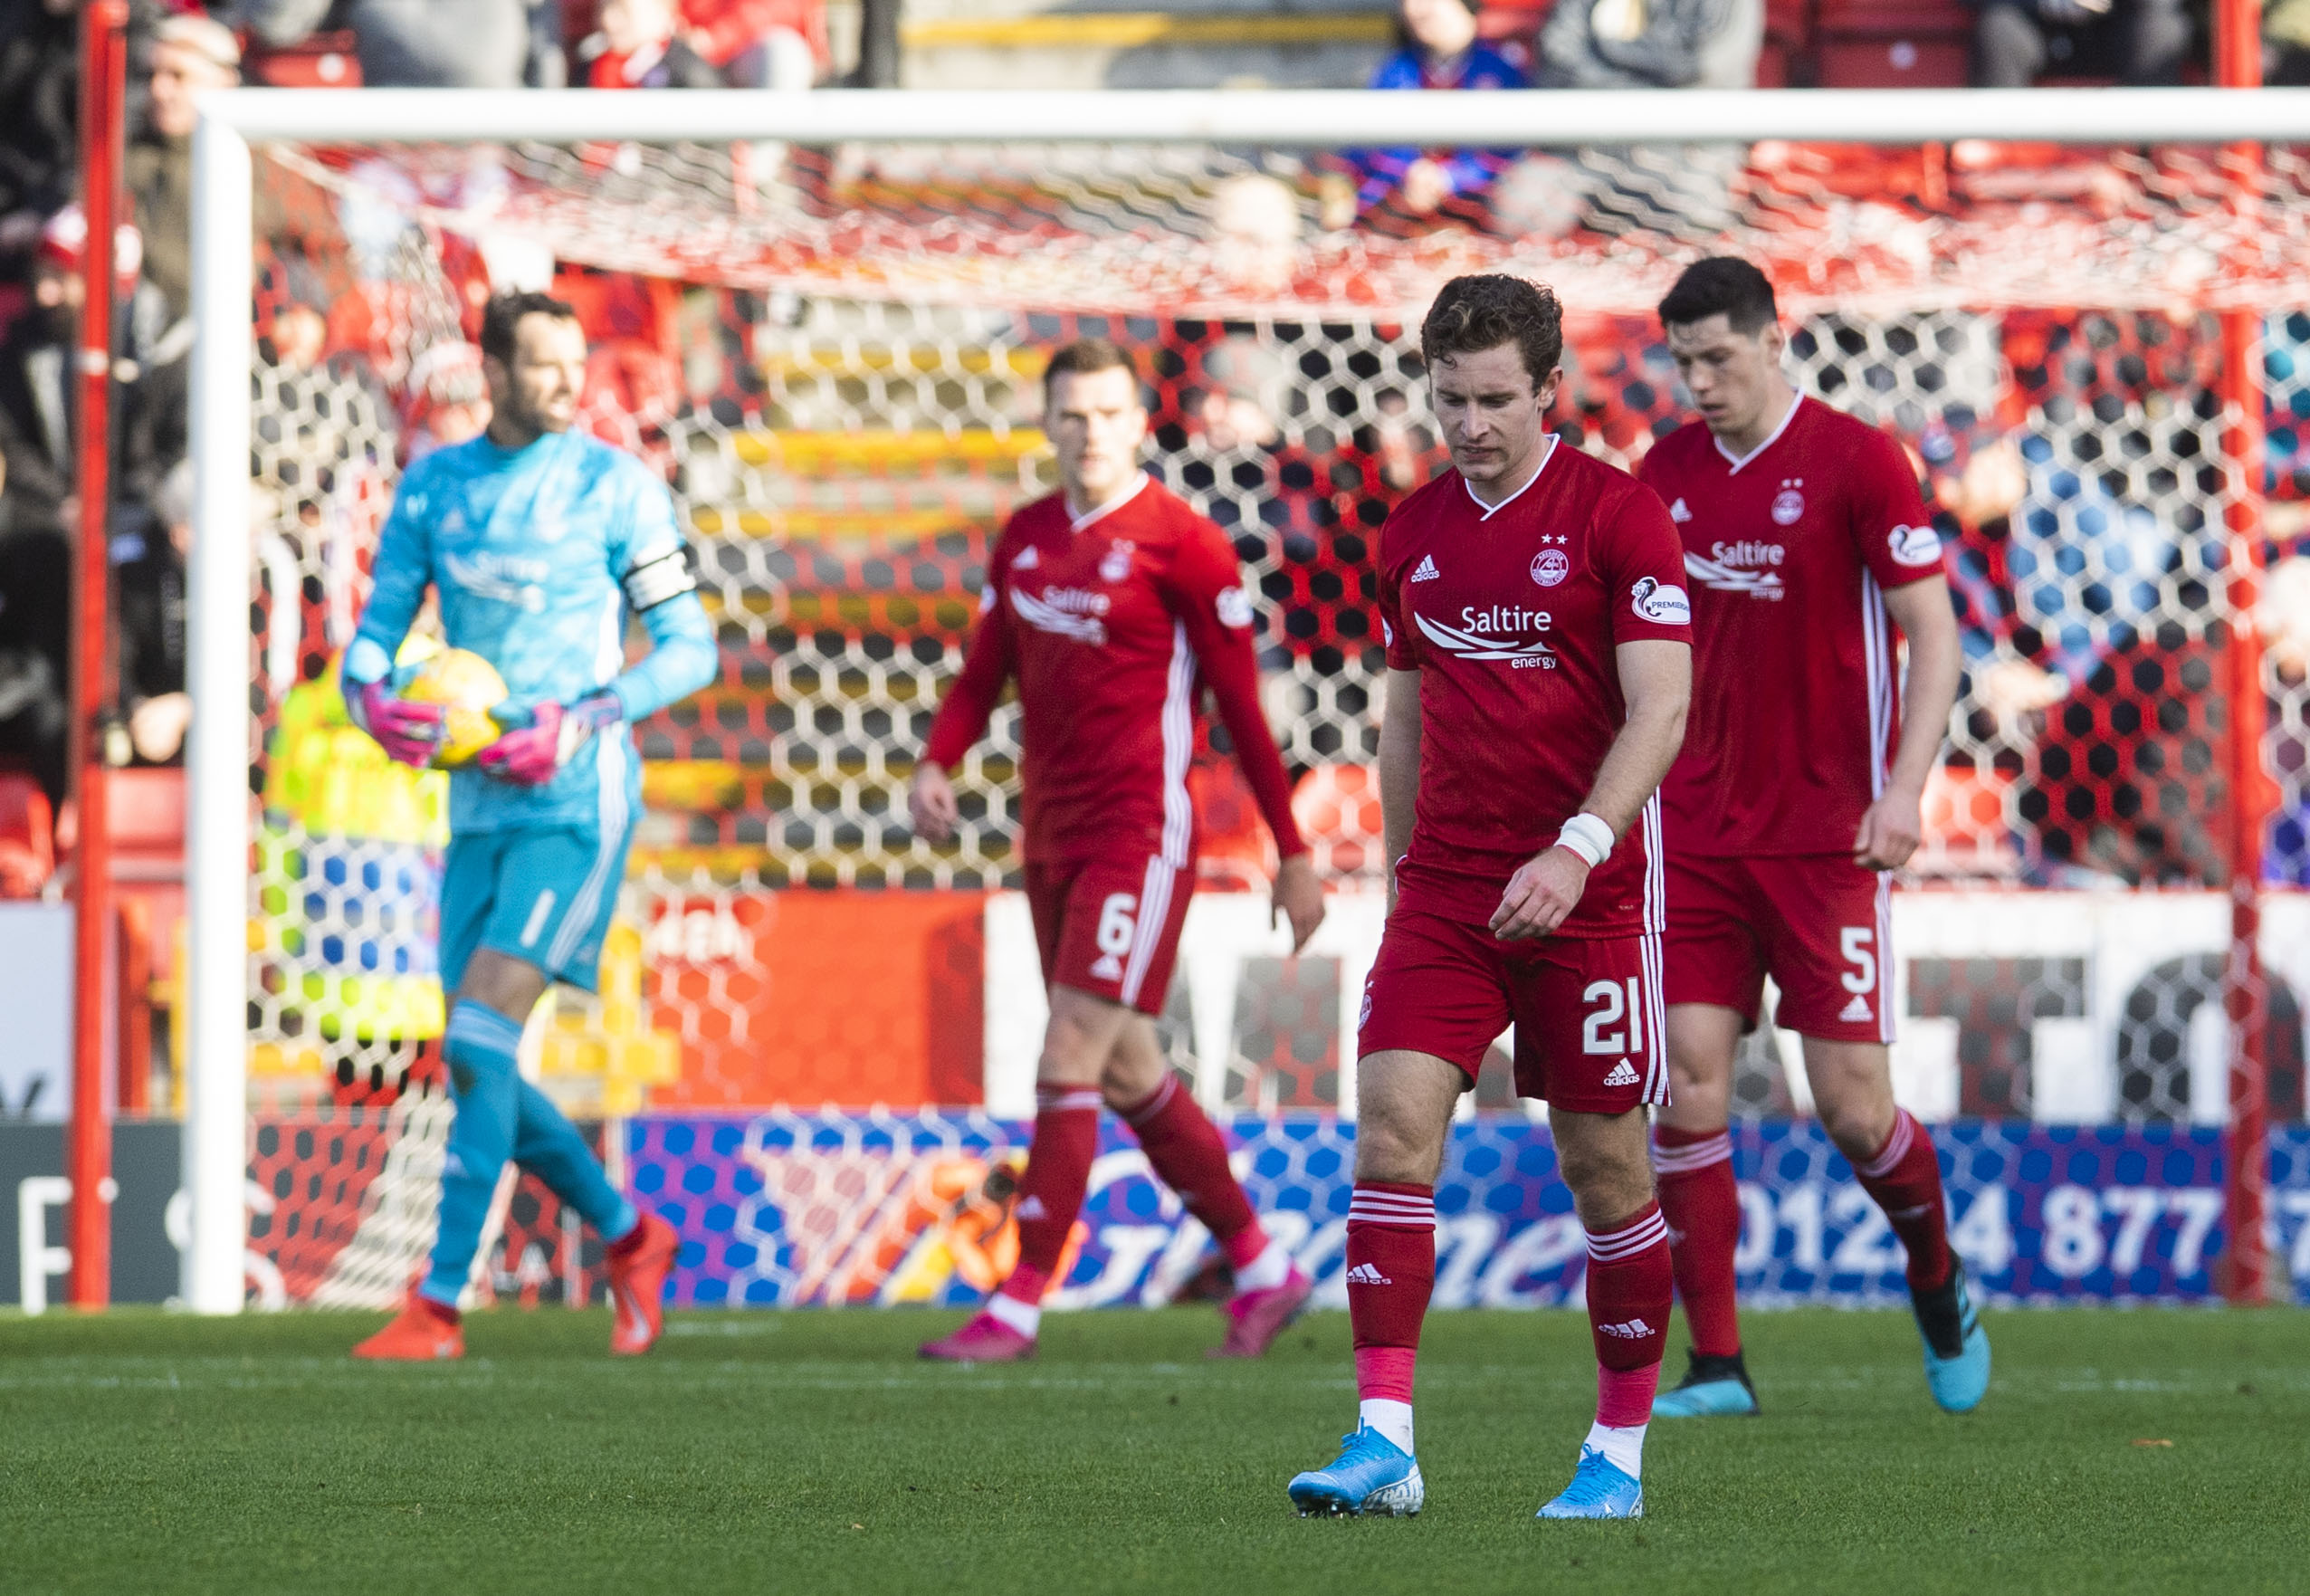 Aberdeen's Jon Gallagher is left dejected as his side go 4-0 down during the Ladbrokes Premiership match between Aberdeen and Celtic.